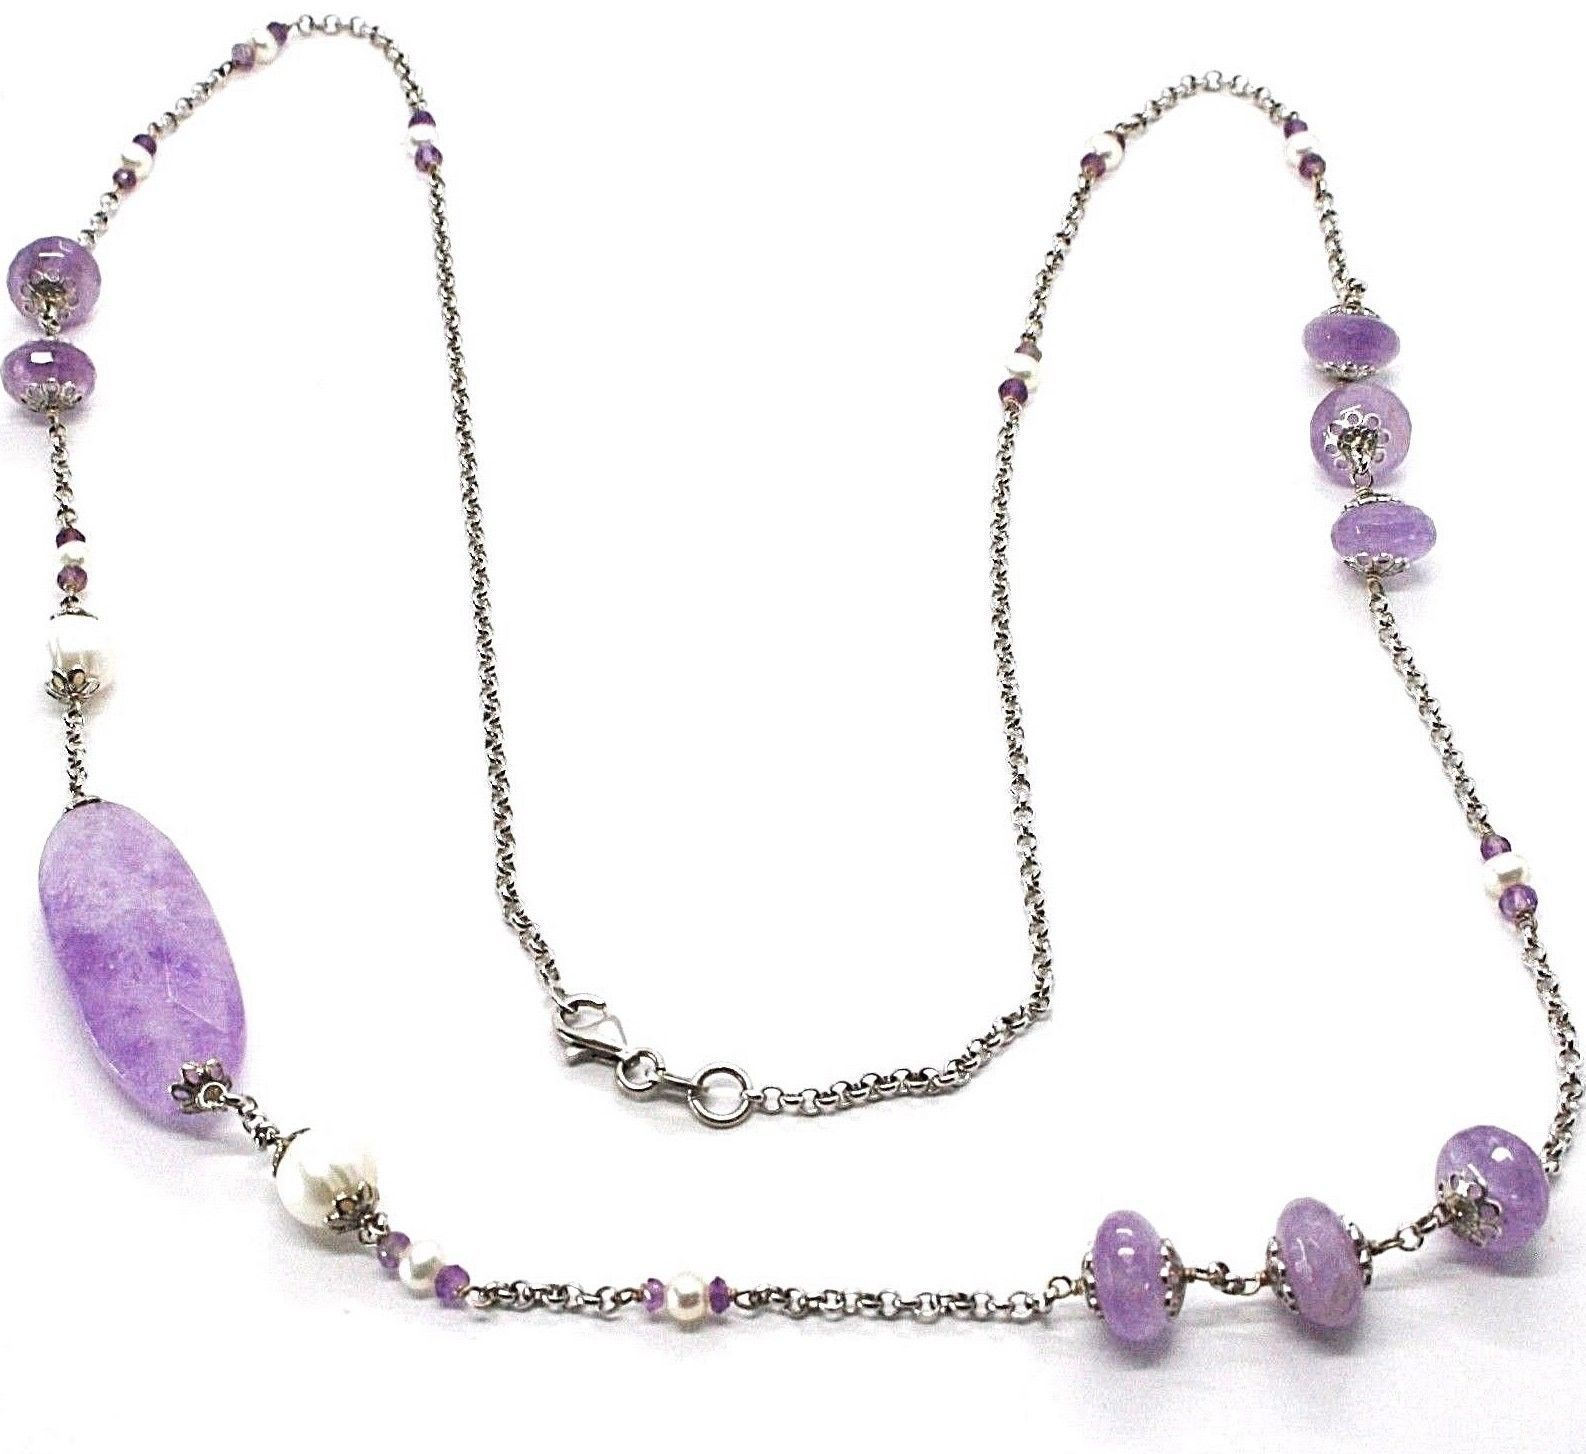 925 Silver Necklace, Amethyst, Oval and Disk, Pearls, Length 80 cm